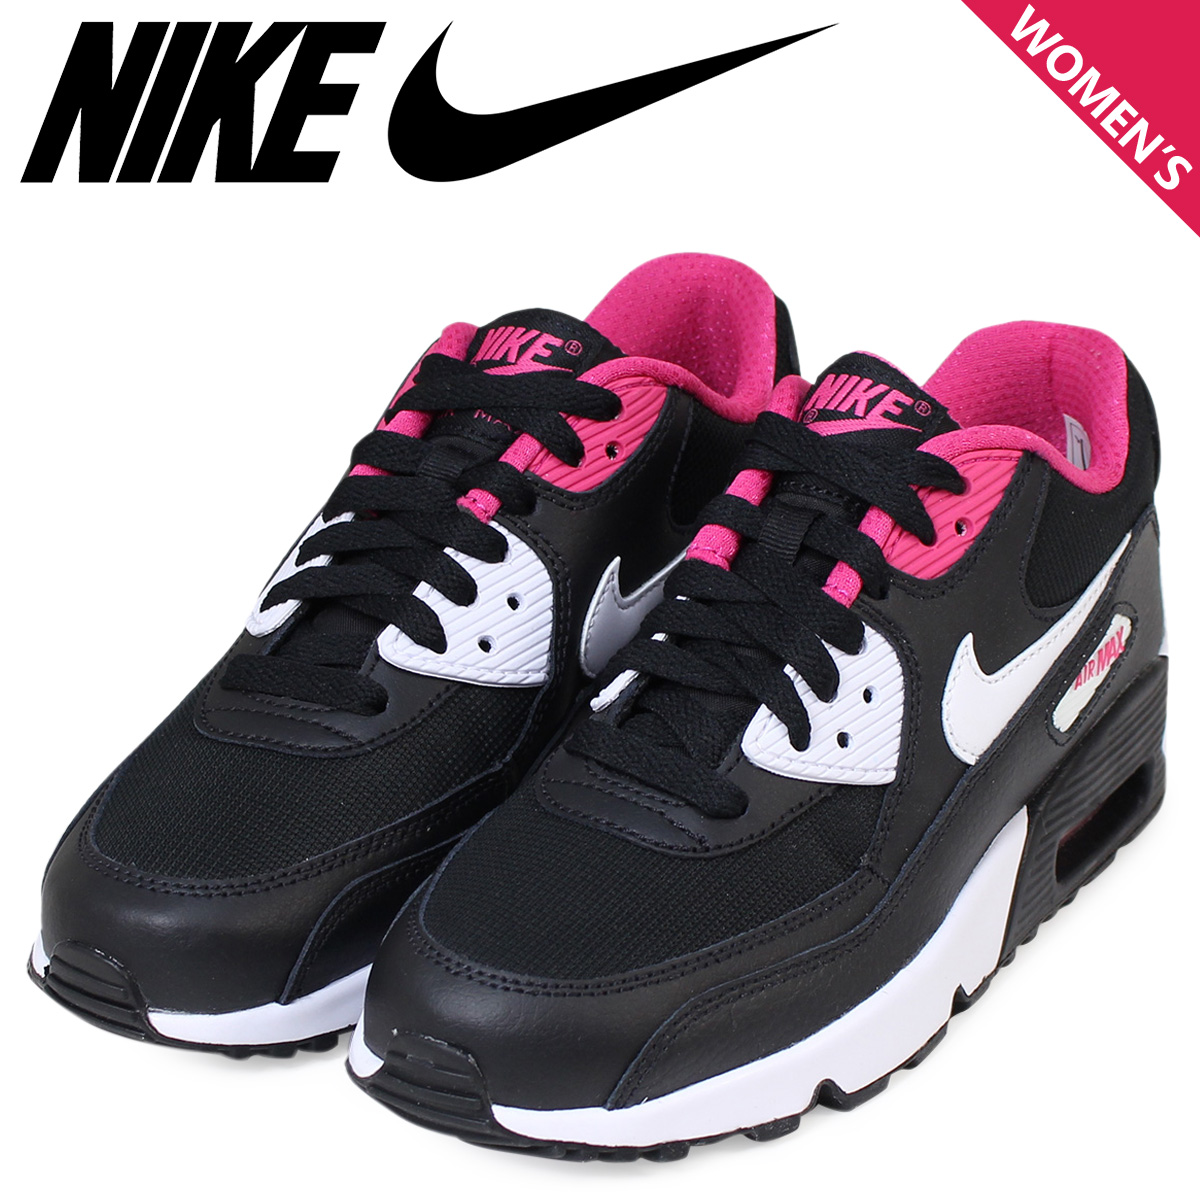 Women's Nike Air Max Nike sneakers og fodtøjJD Sports Nike sneakers og fodtøj JD Sports